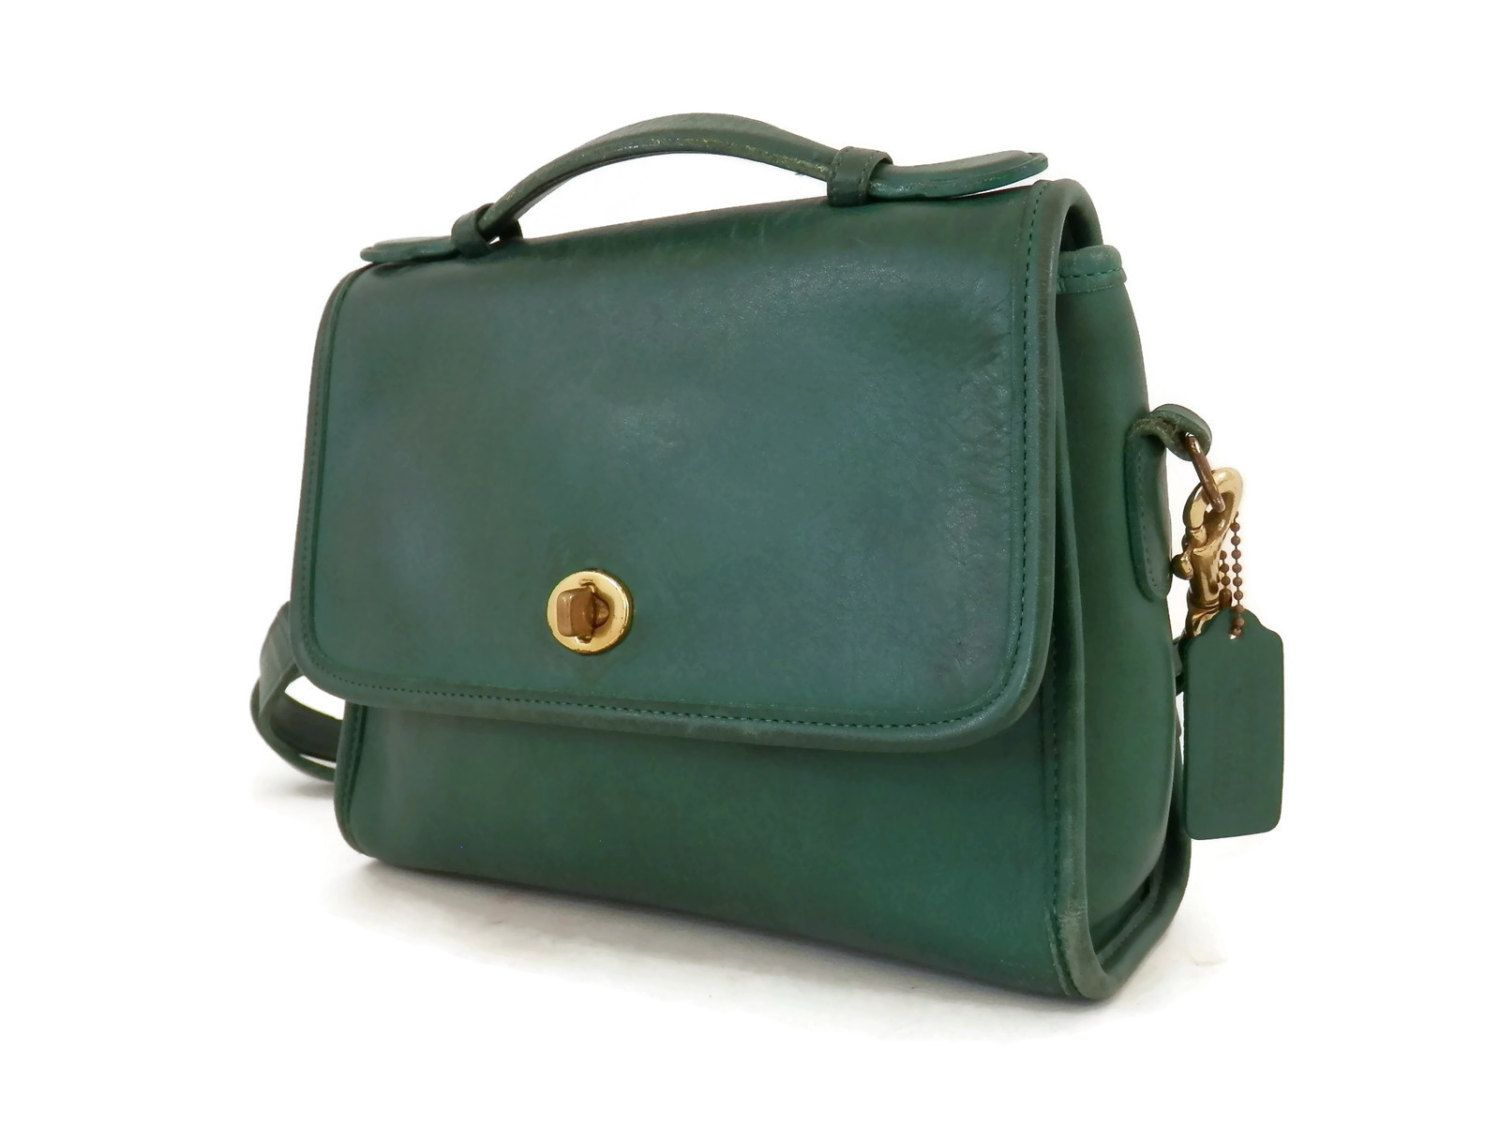 92c3aa07 Vintage Coach Court Cross Cross Body Bag Forest Green | Vintage ...